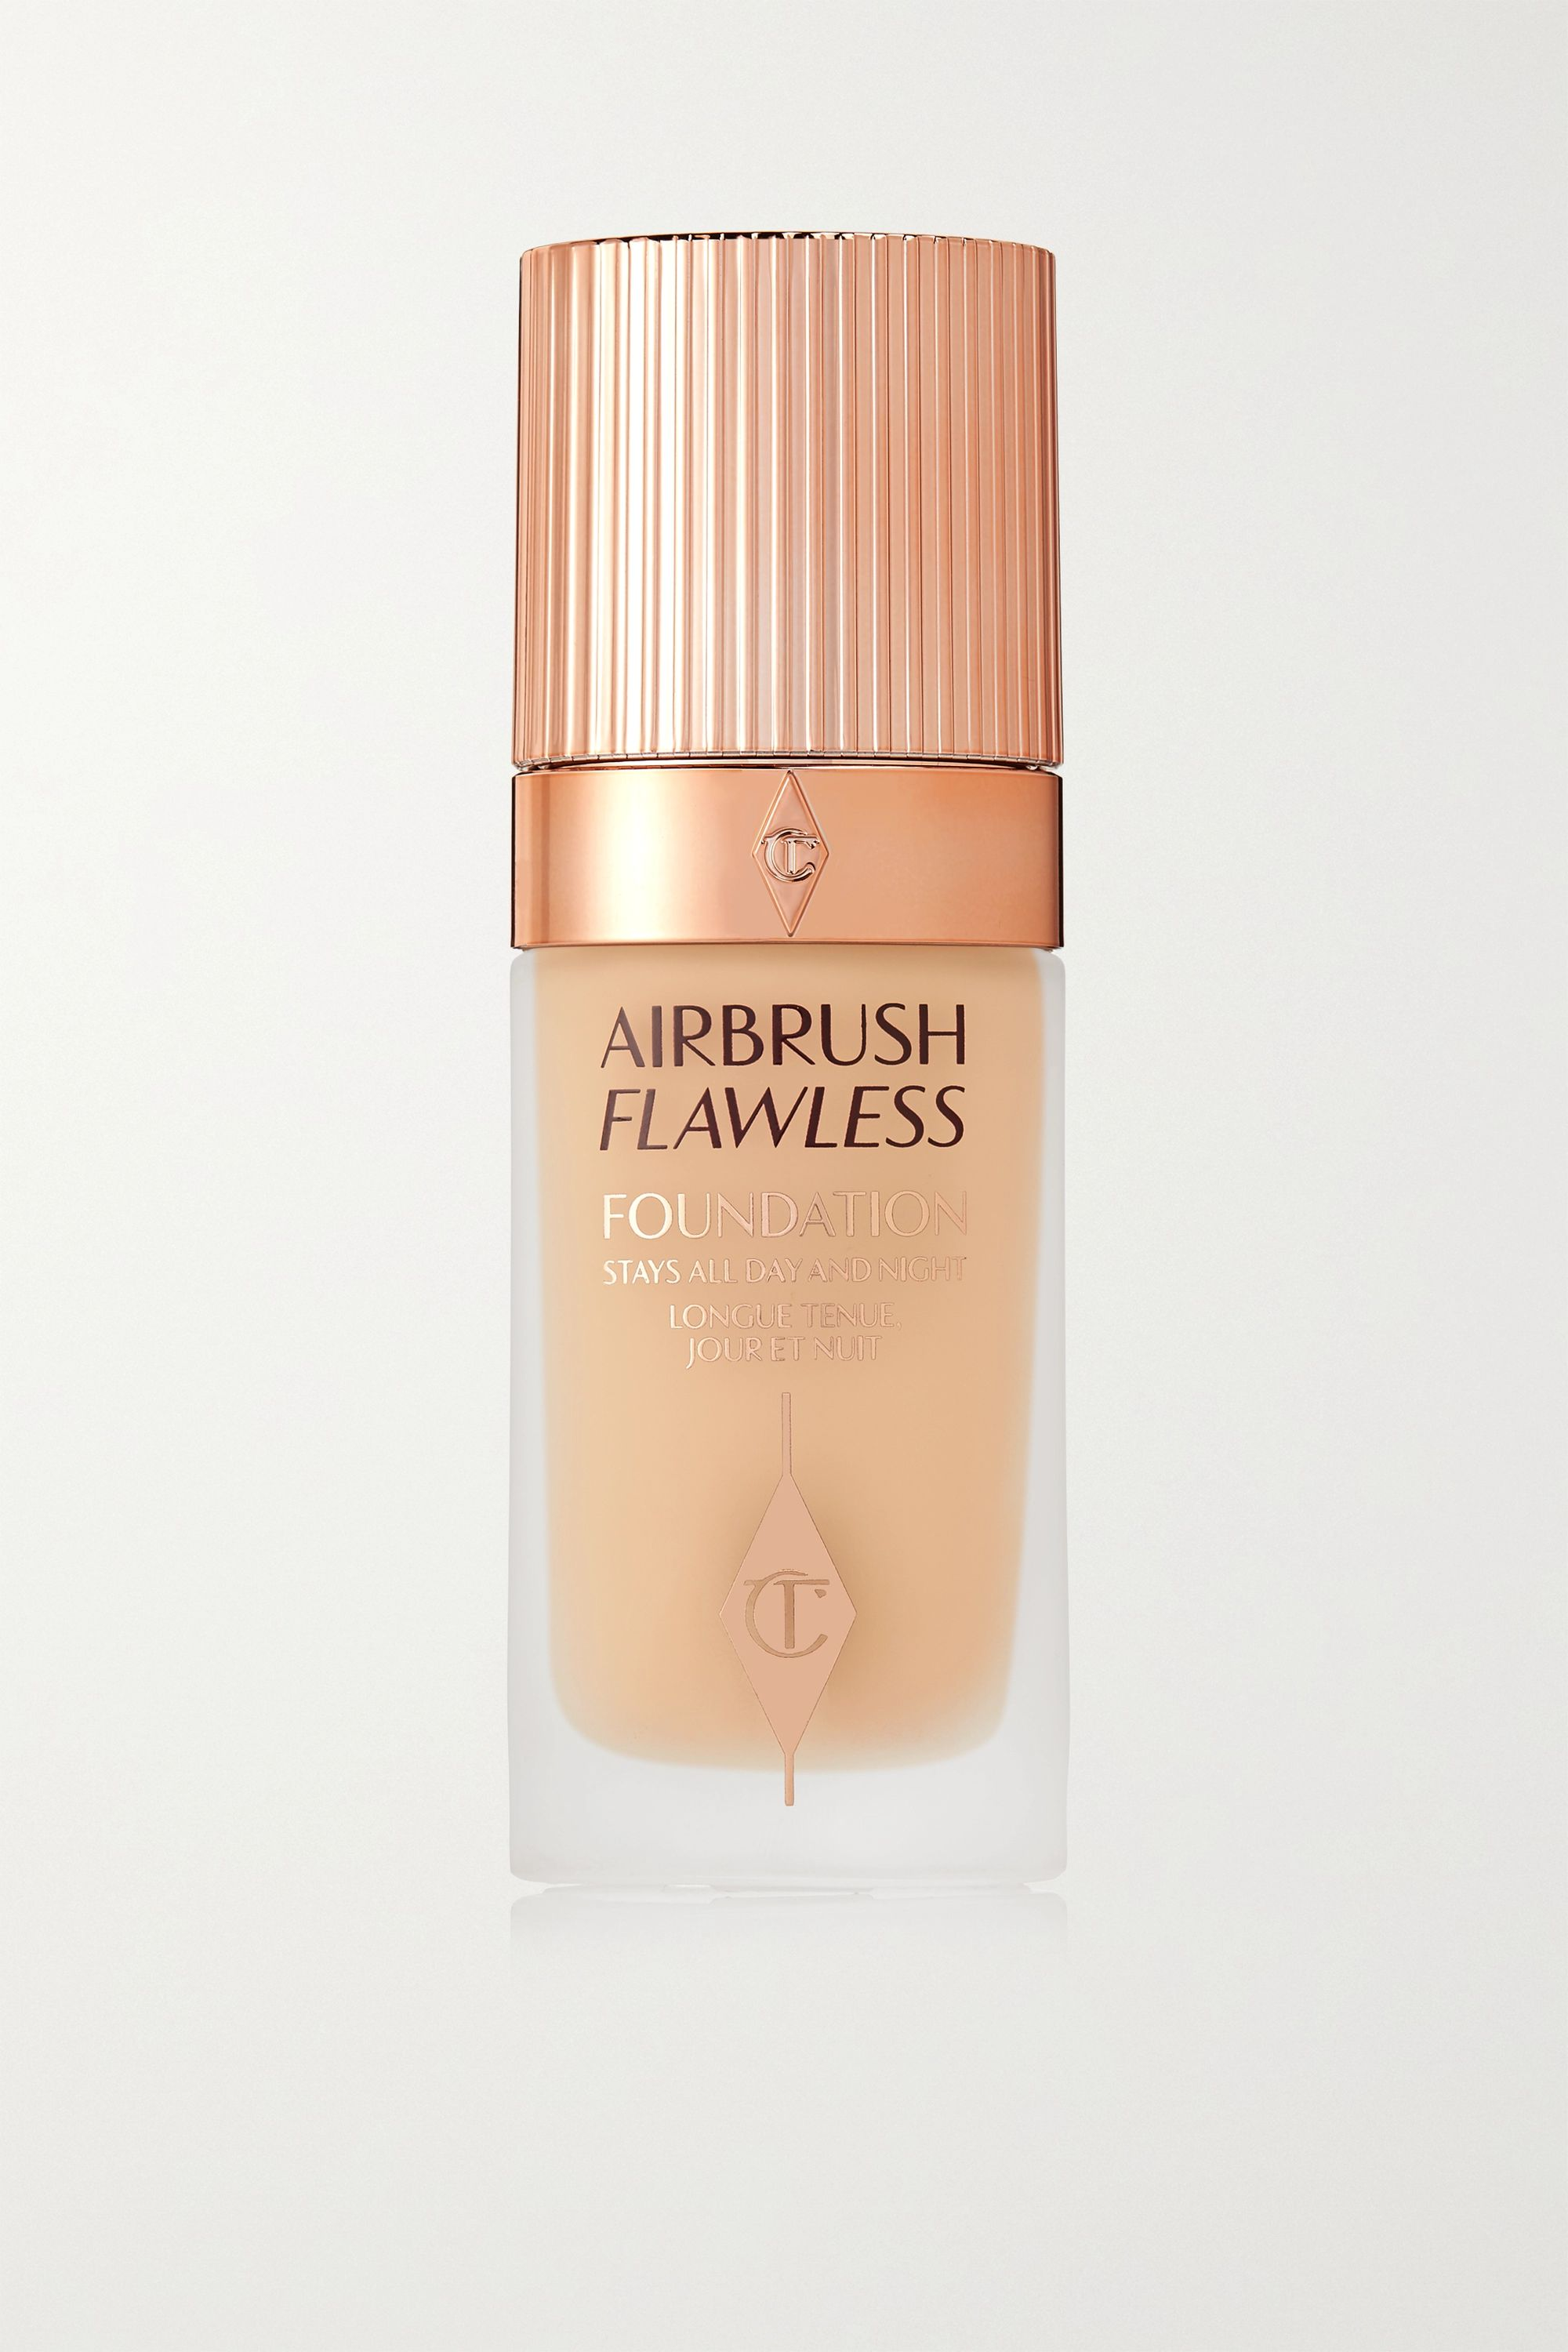 Charlotte Tilbury Fond de teint Airbrush Flawless Foundation, 2 Cool, 30 ml